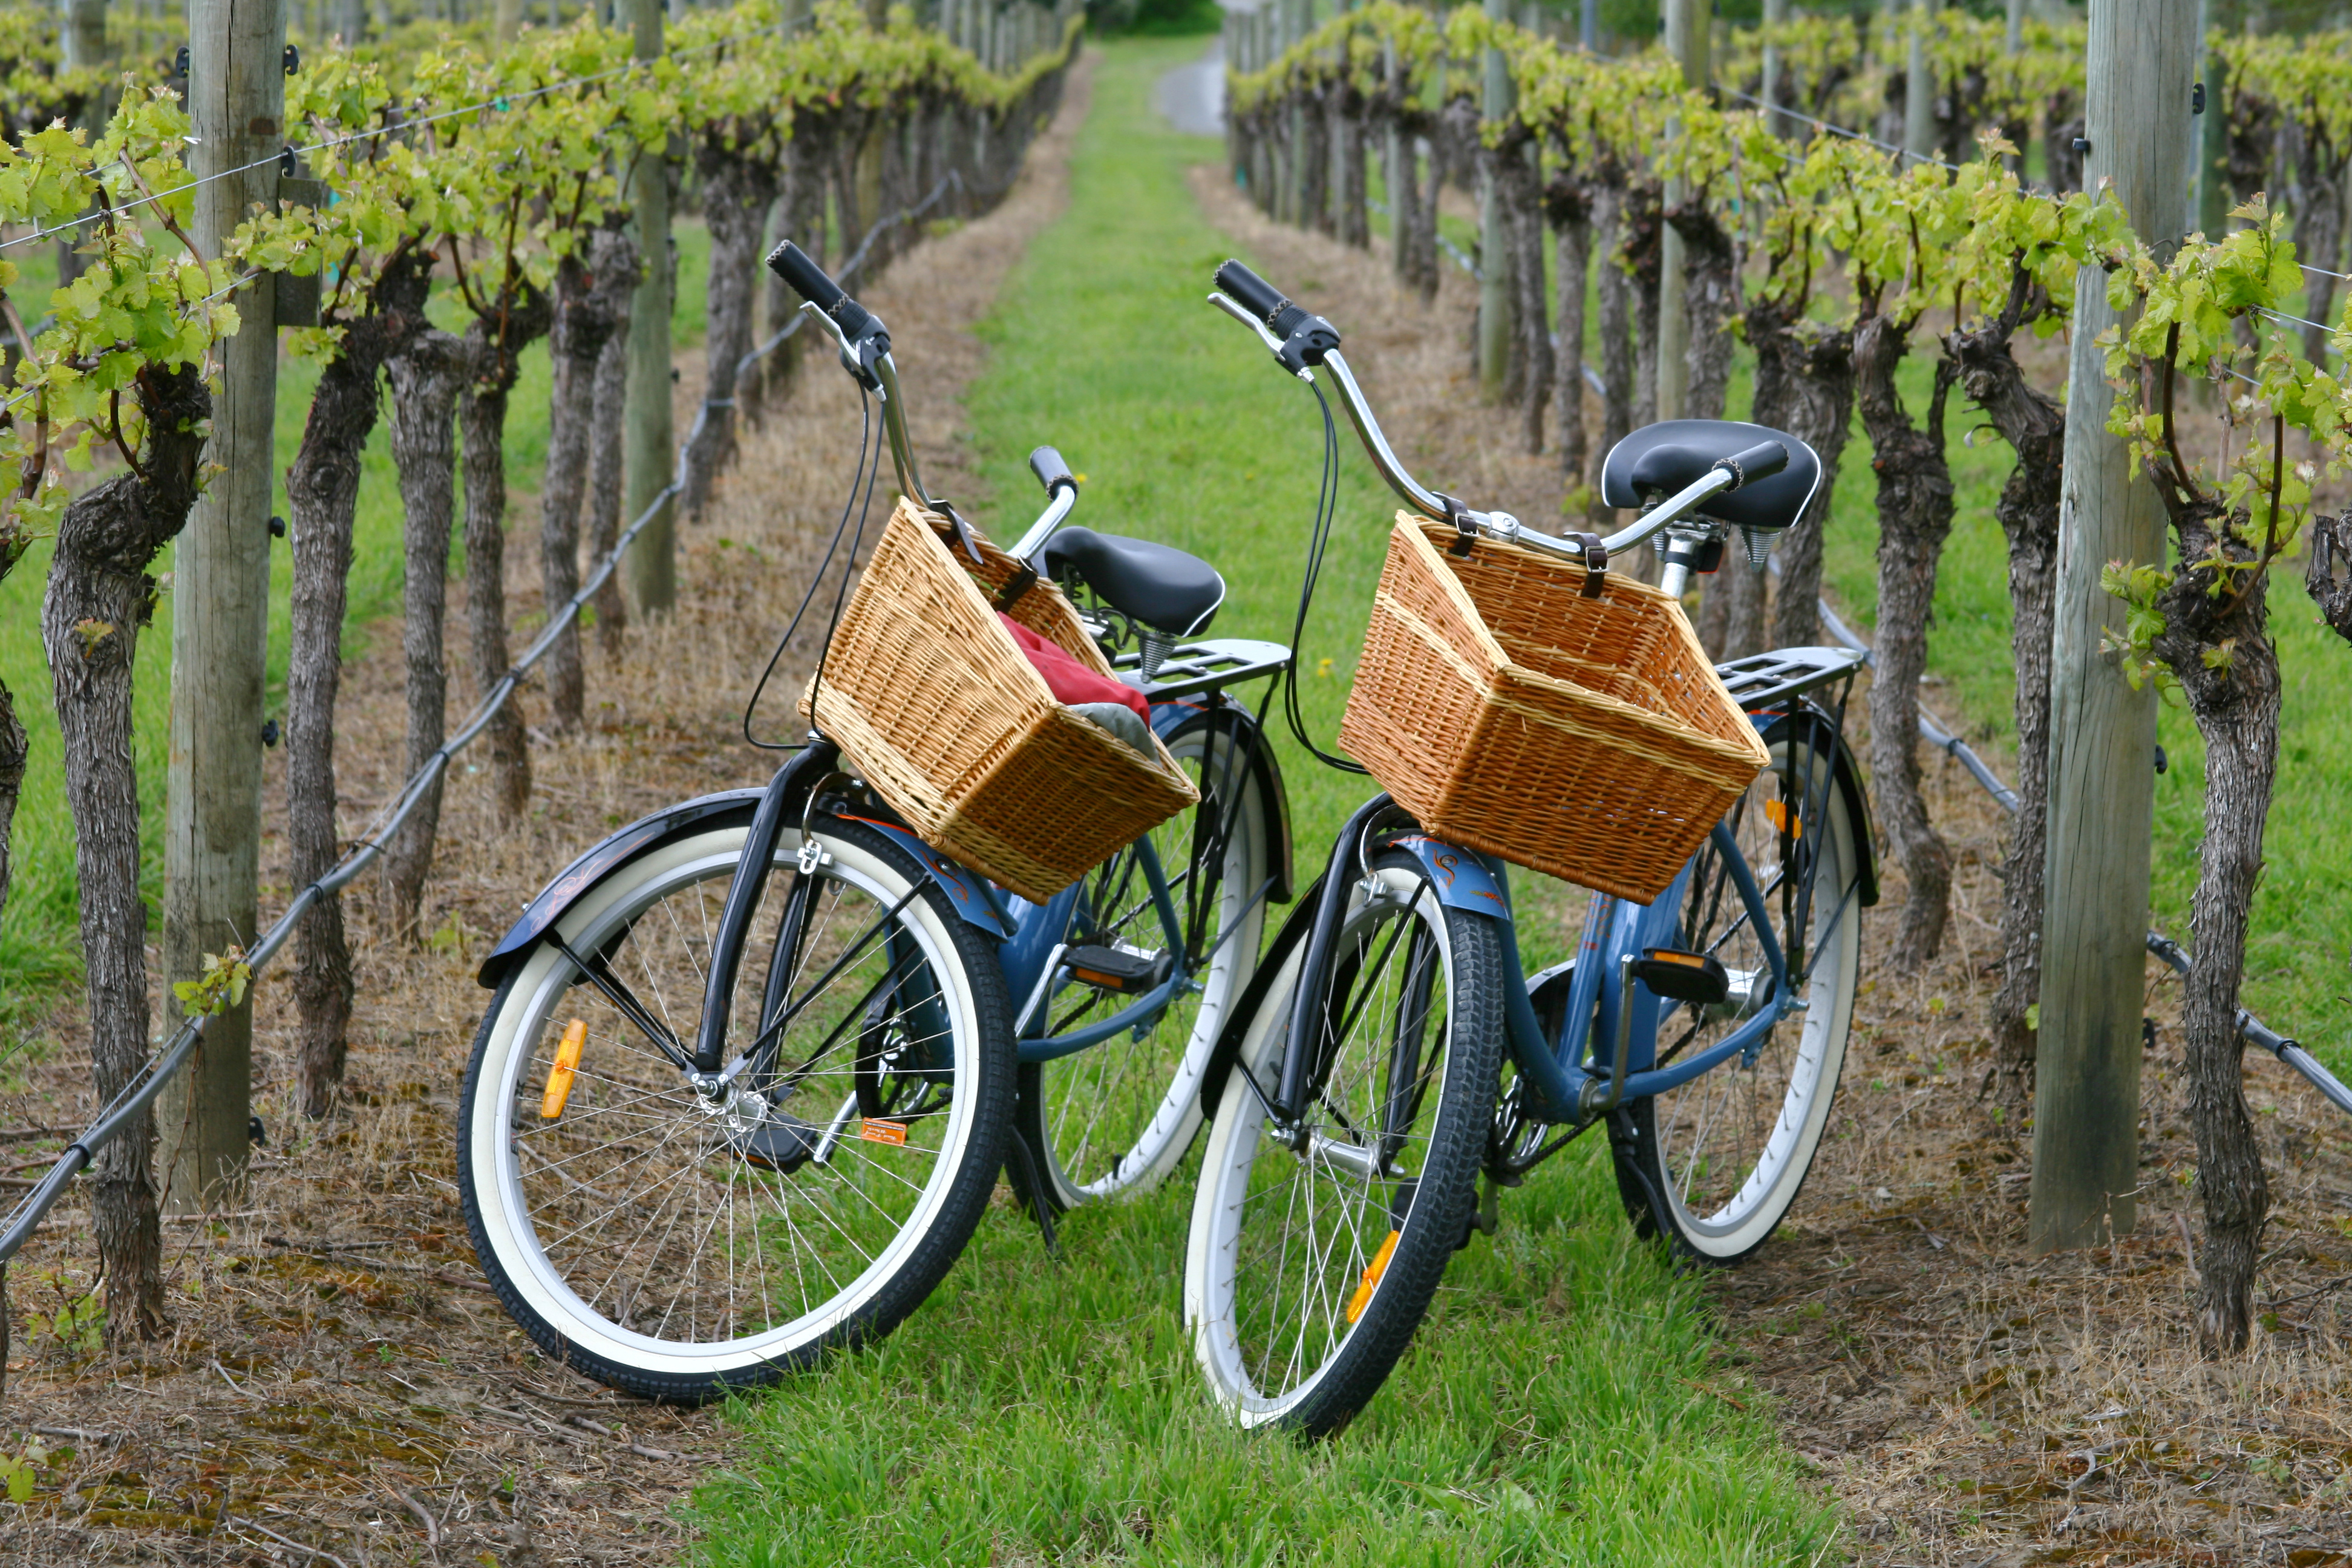 Two bicycles with painted blue frames and wicker baskets hanging from the handlebars sit in the middle of a vineyard. There are rows of vines on both sides of the bicycles.